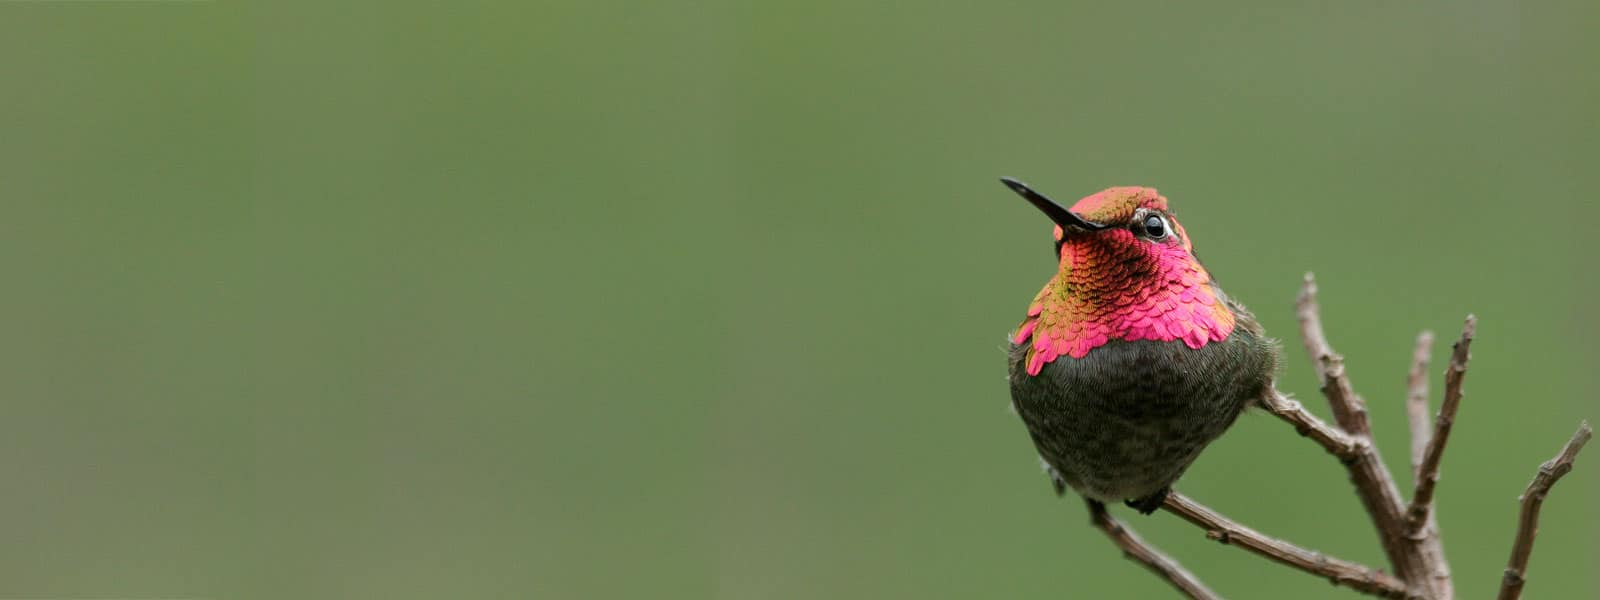 Anna's Hummingbird. Photo by Christopher Whittier